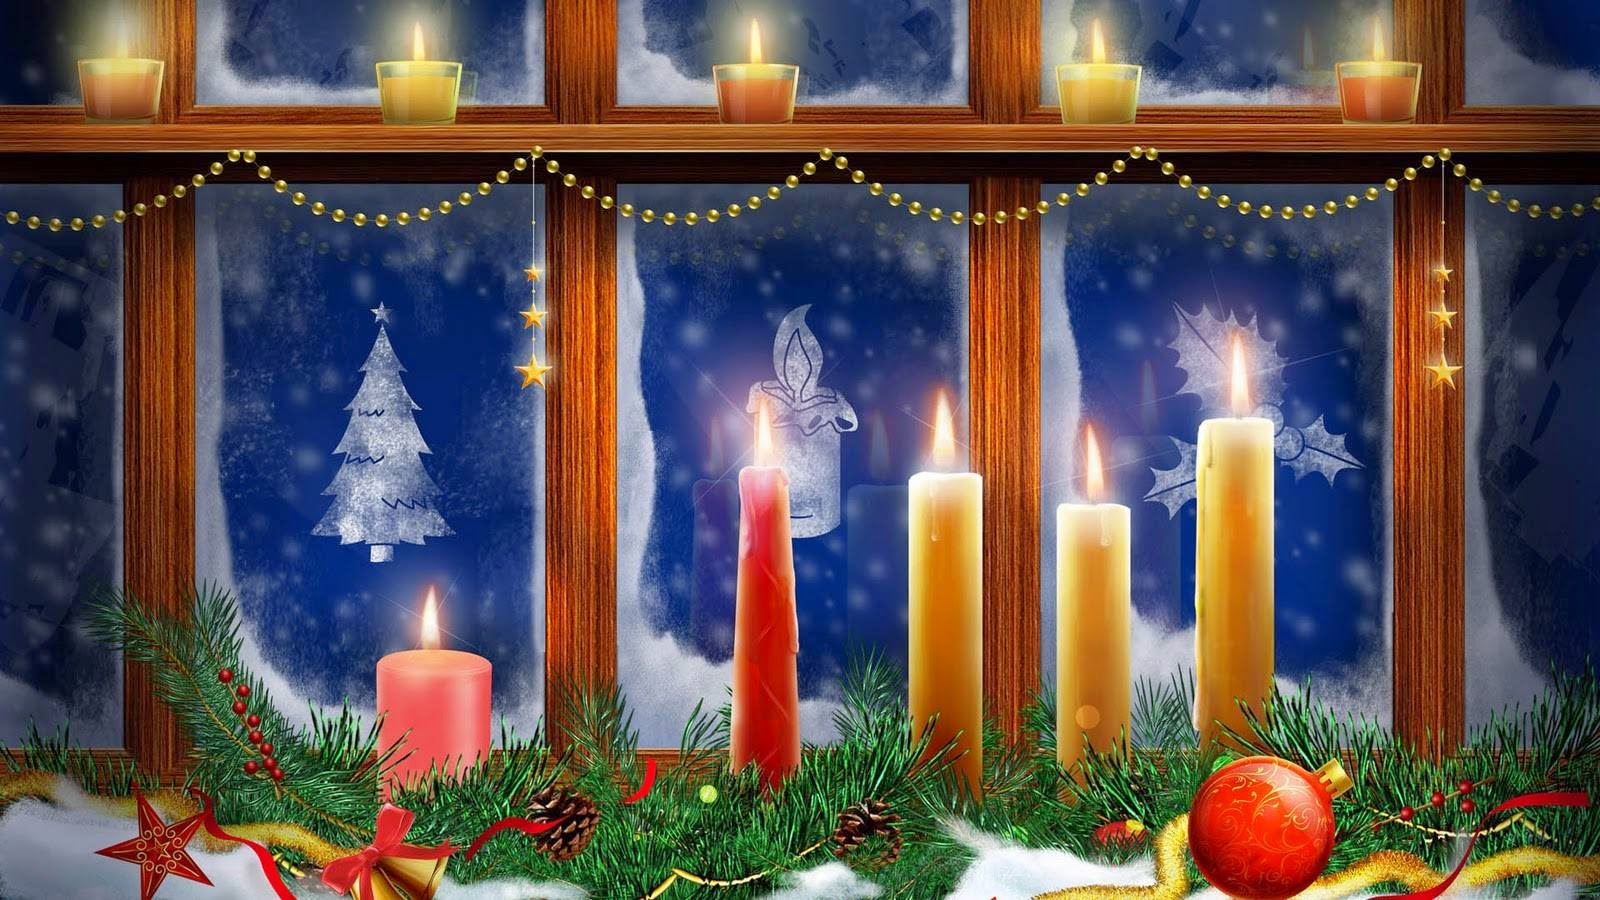 Merry Christmas Poems,Rhymes | Christmas Poems in English